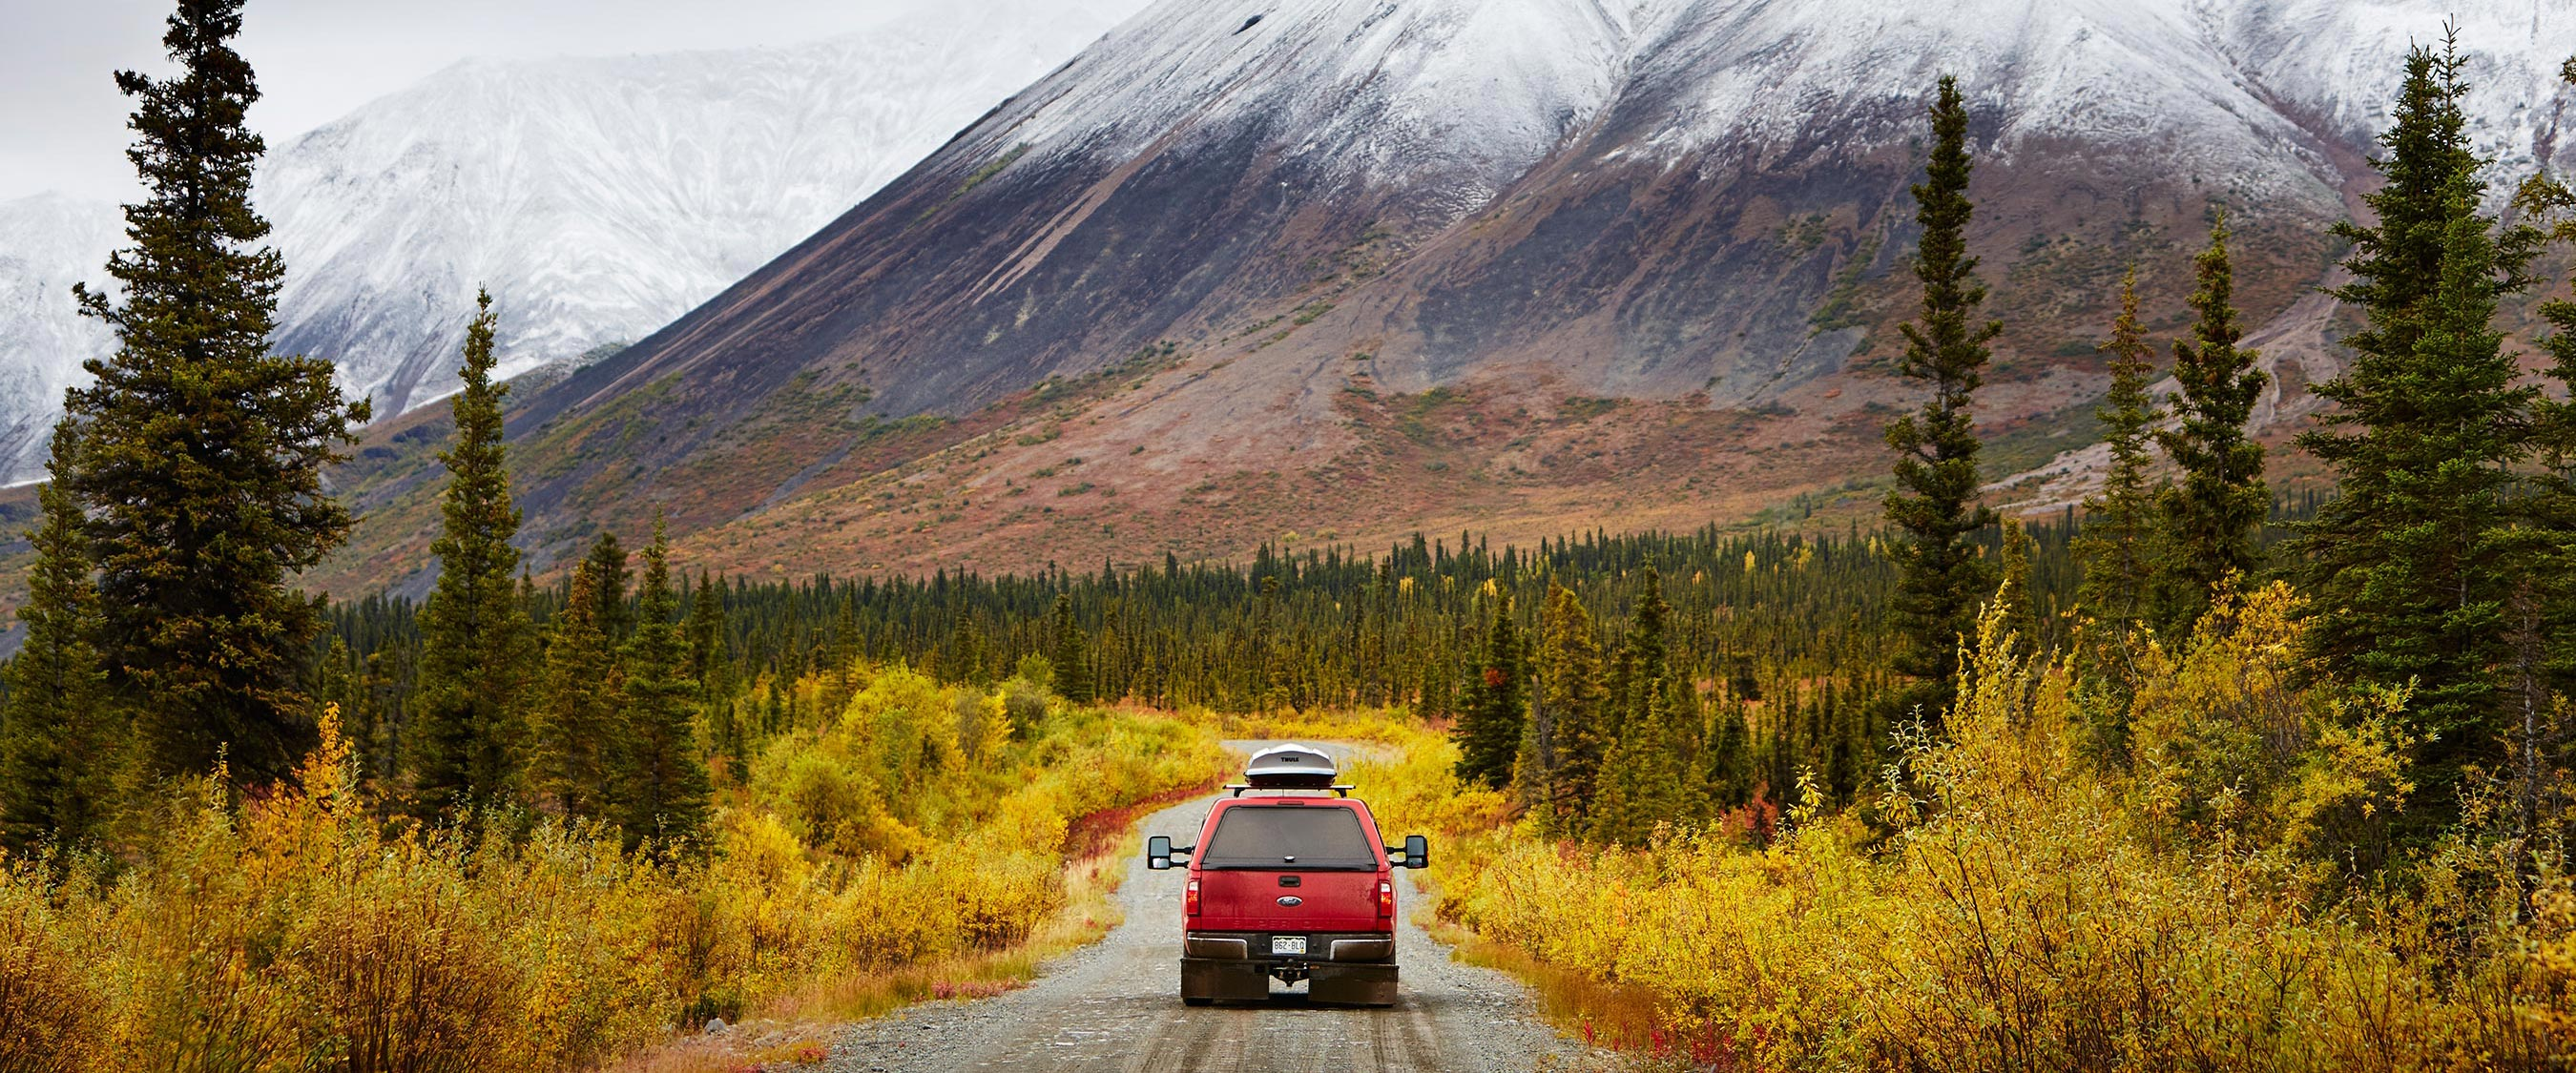 Exploring Wrangell-St. Elias National Park